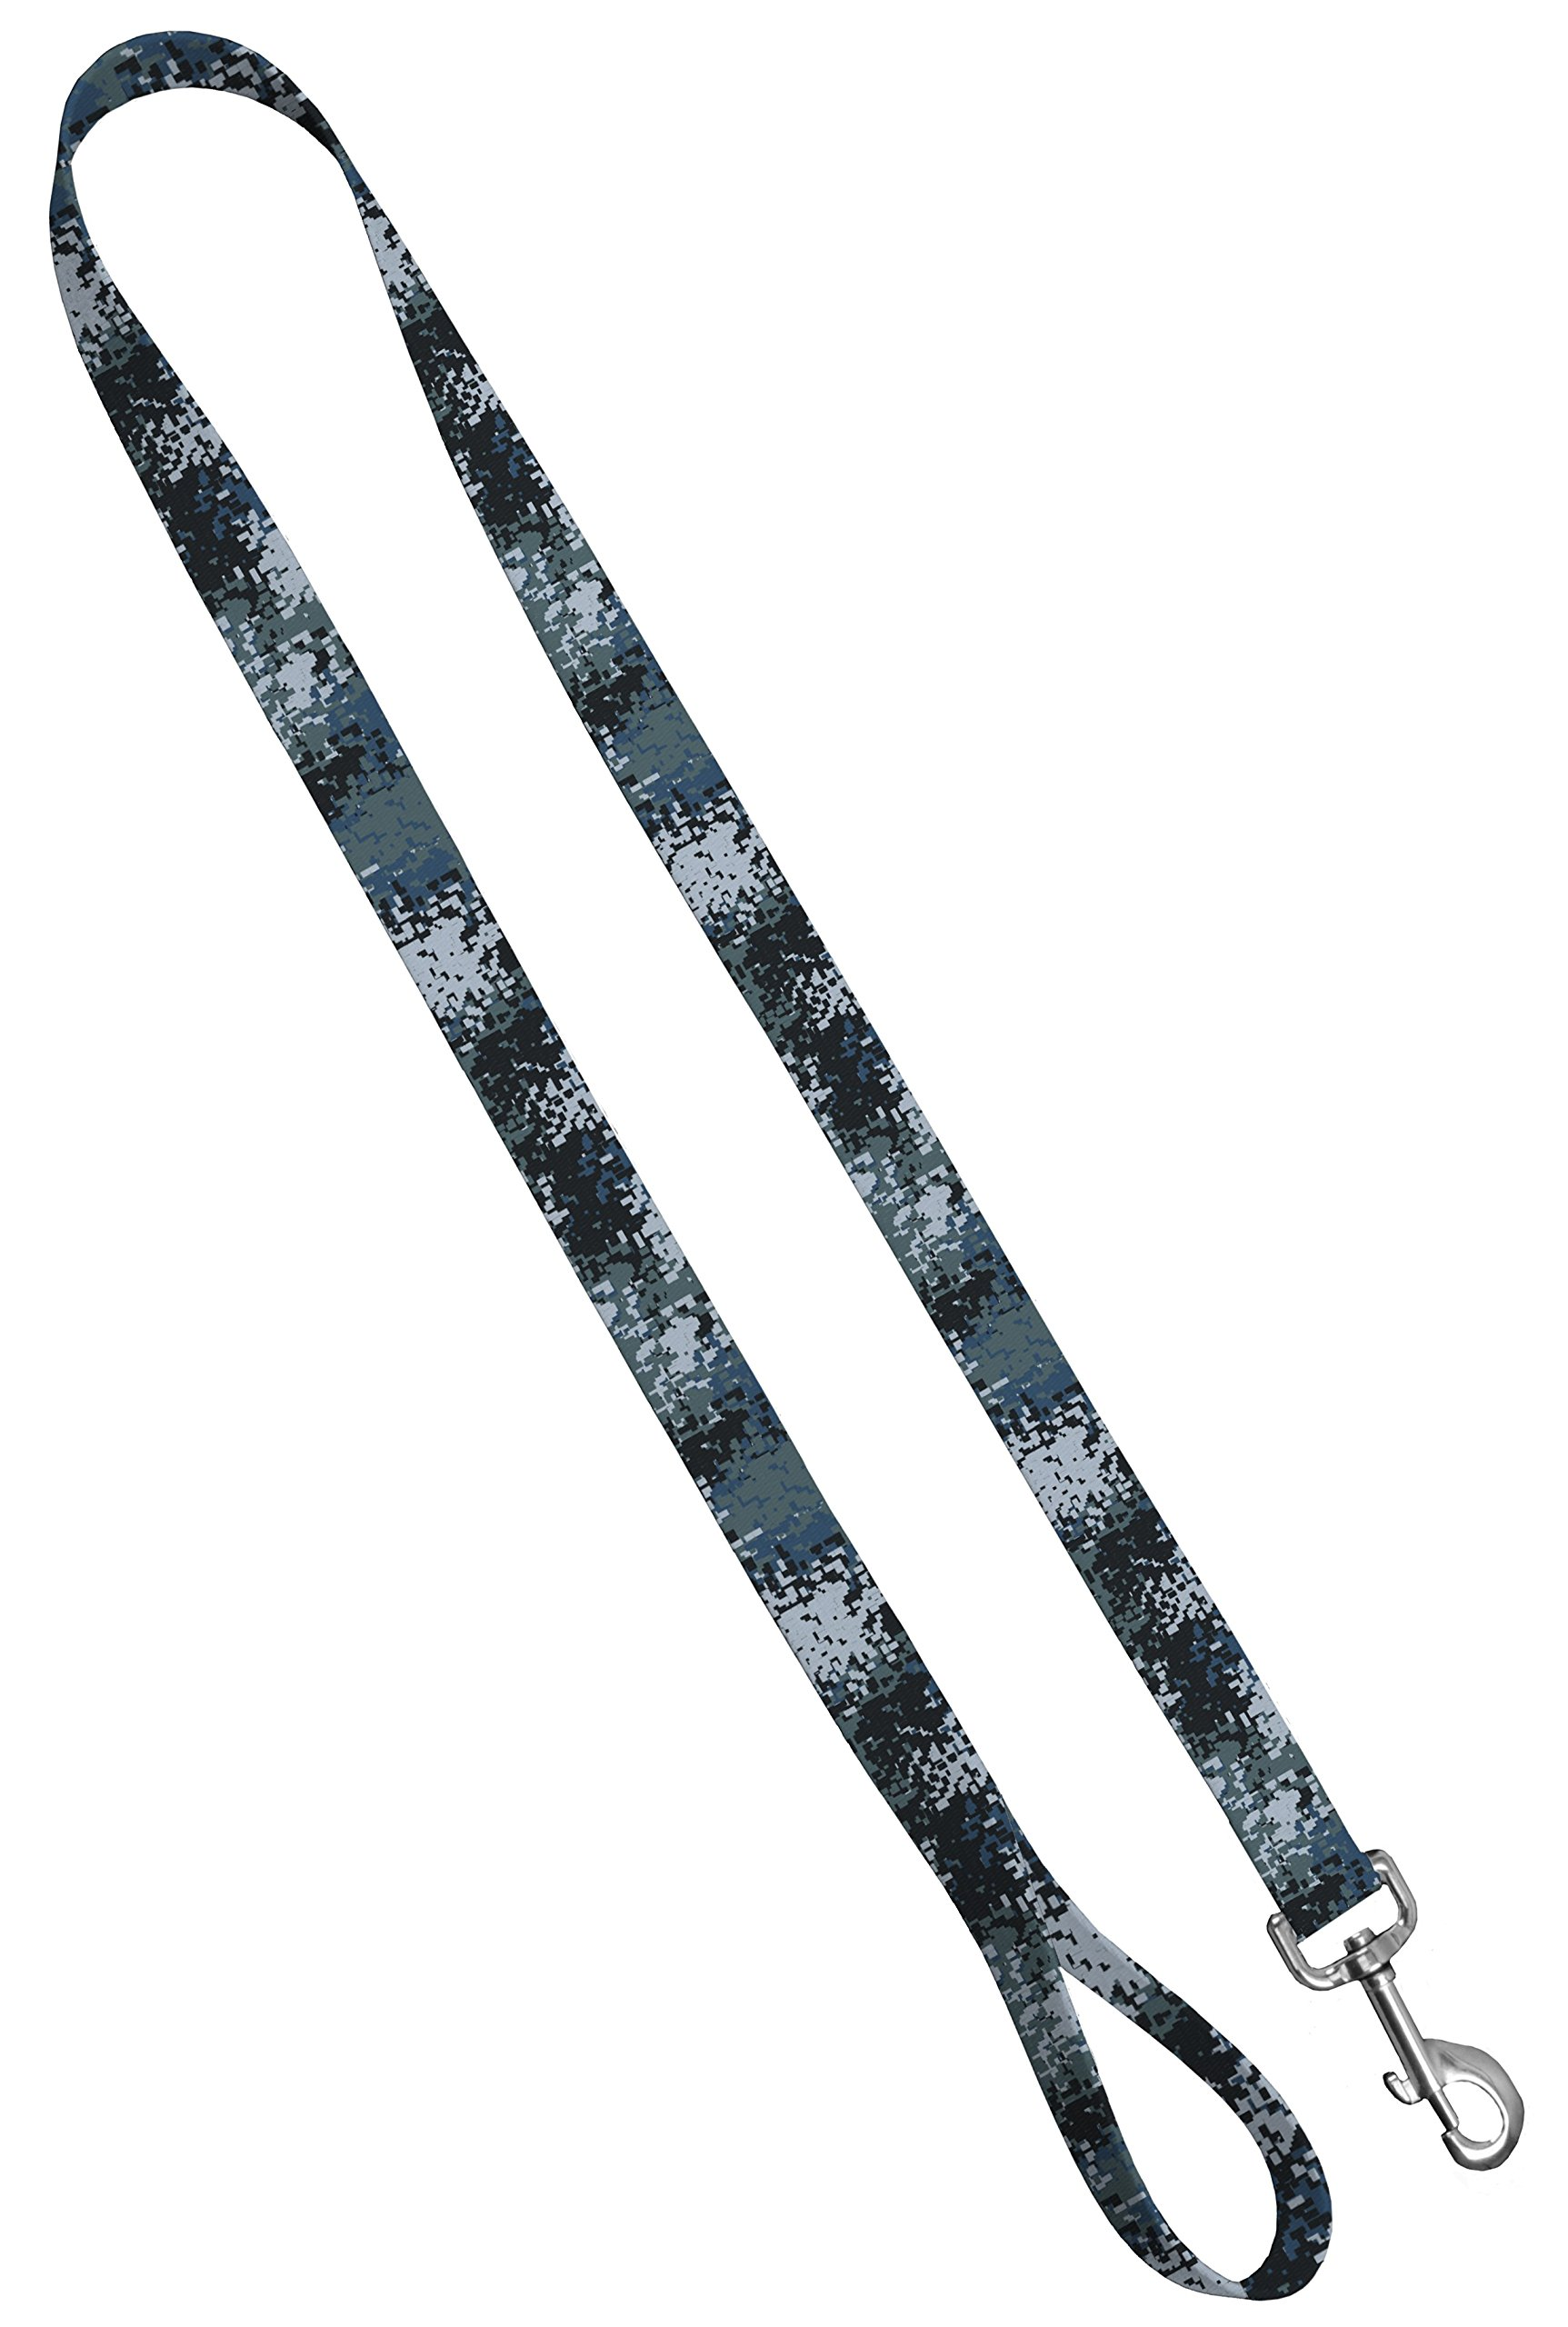 Moose Pet Wear Camo Dog Leash - Camouflage Dog Lead Waterproof with Easy Grip Loop - 1 Inch x 4 Feet, Digi Camo Blue by Moose Pet Wear